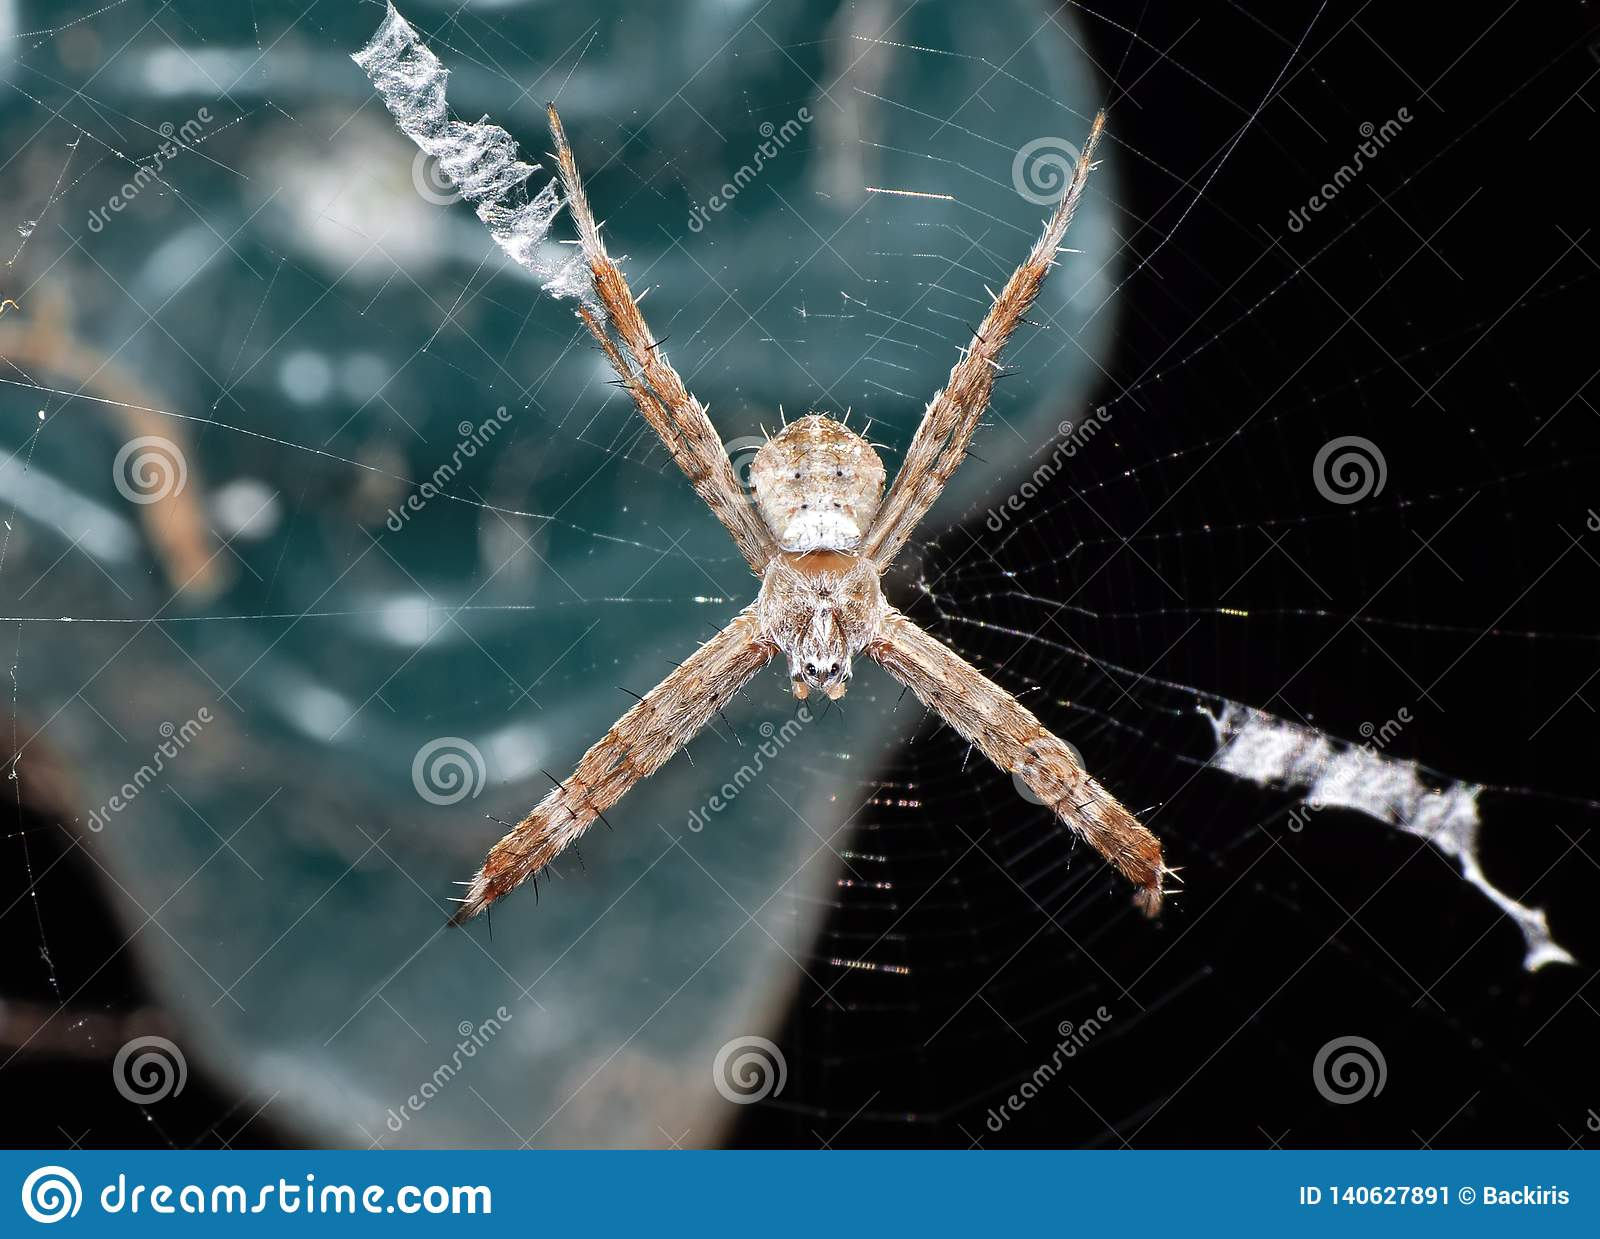 Macro Photo of St Andrew`s Cross Spider on Web Isolated on Background